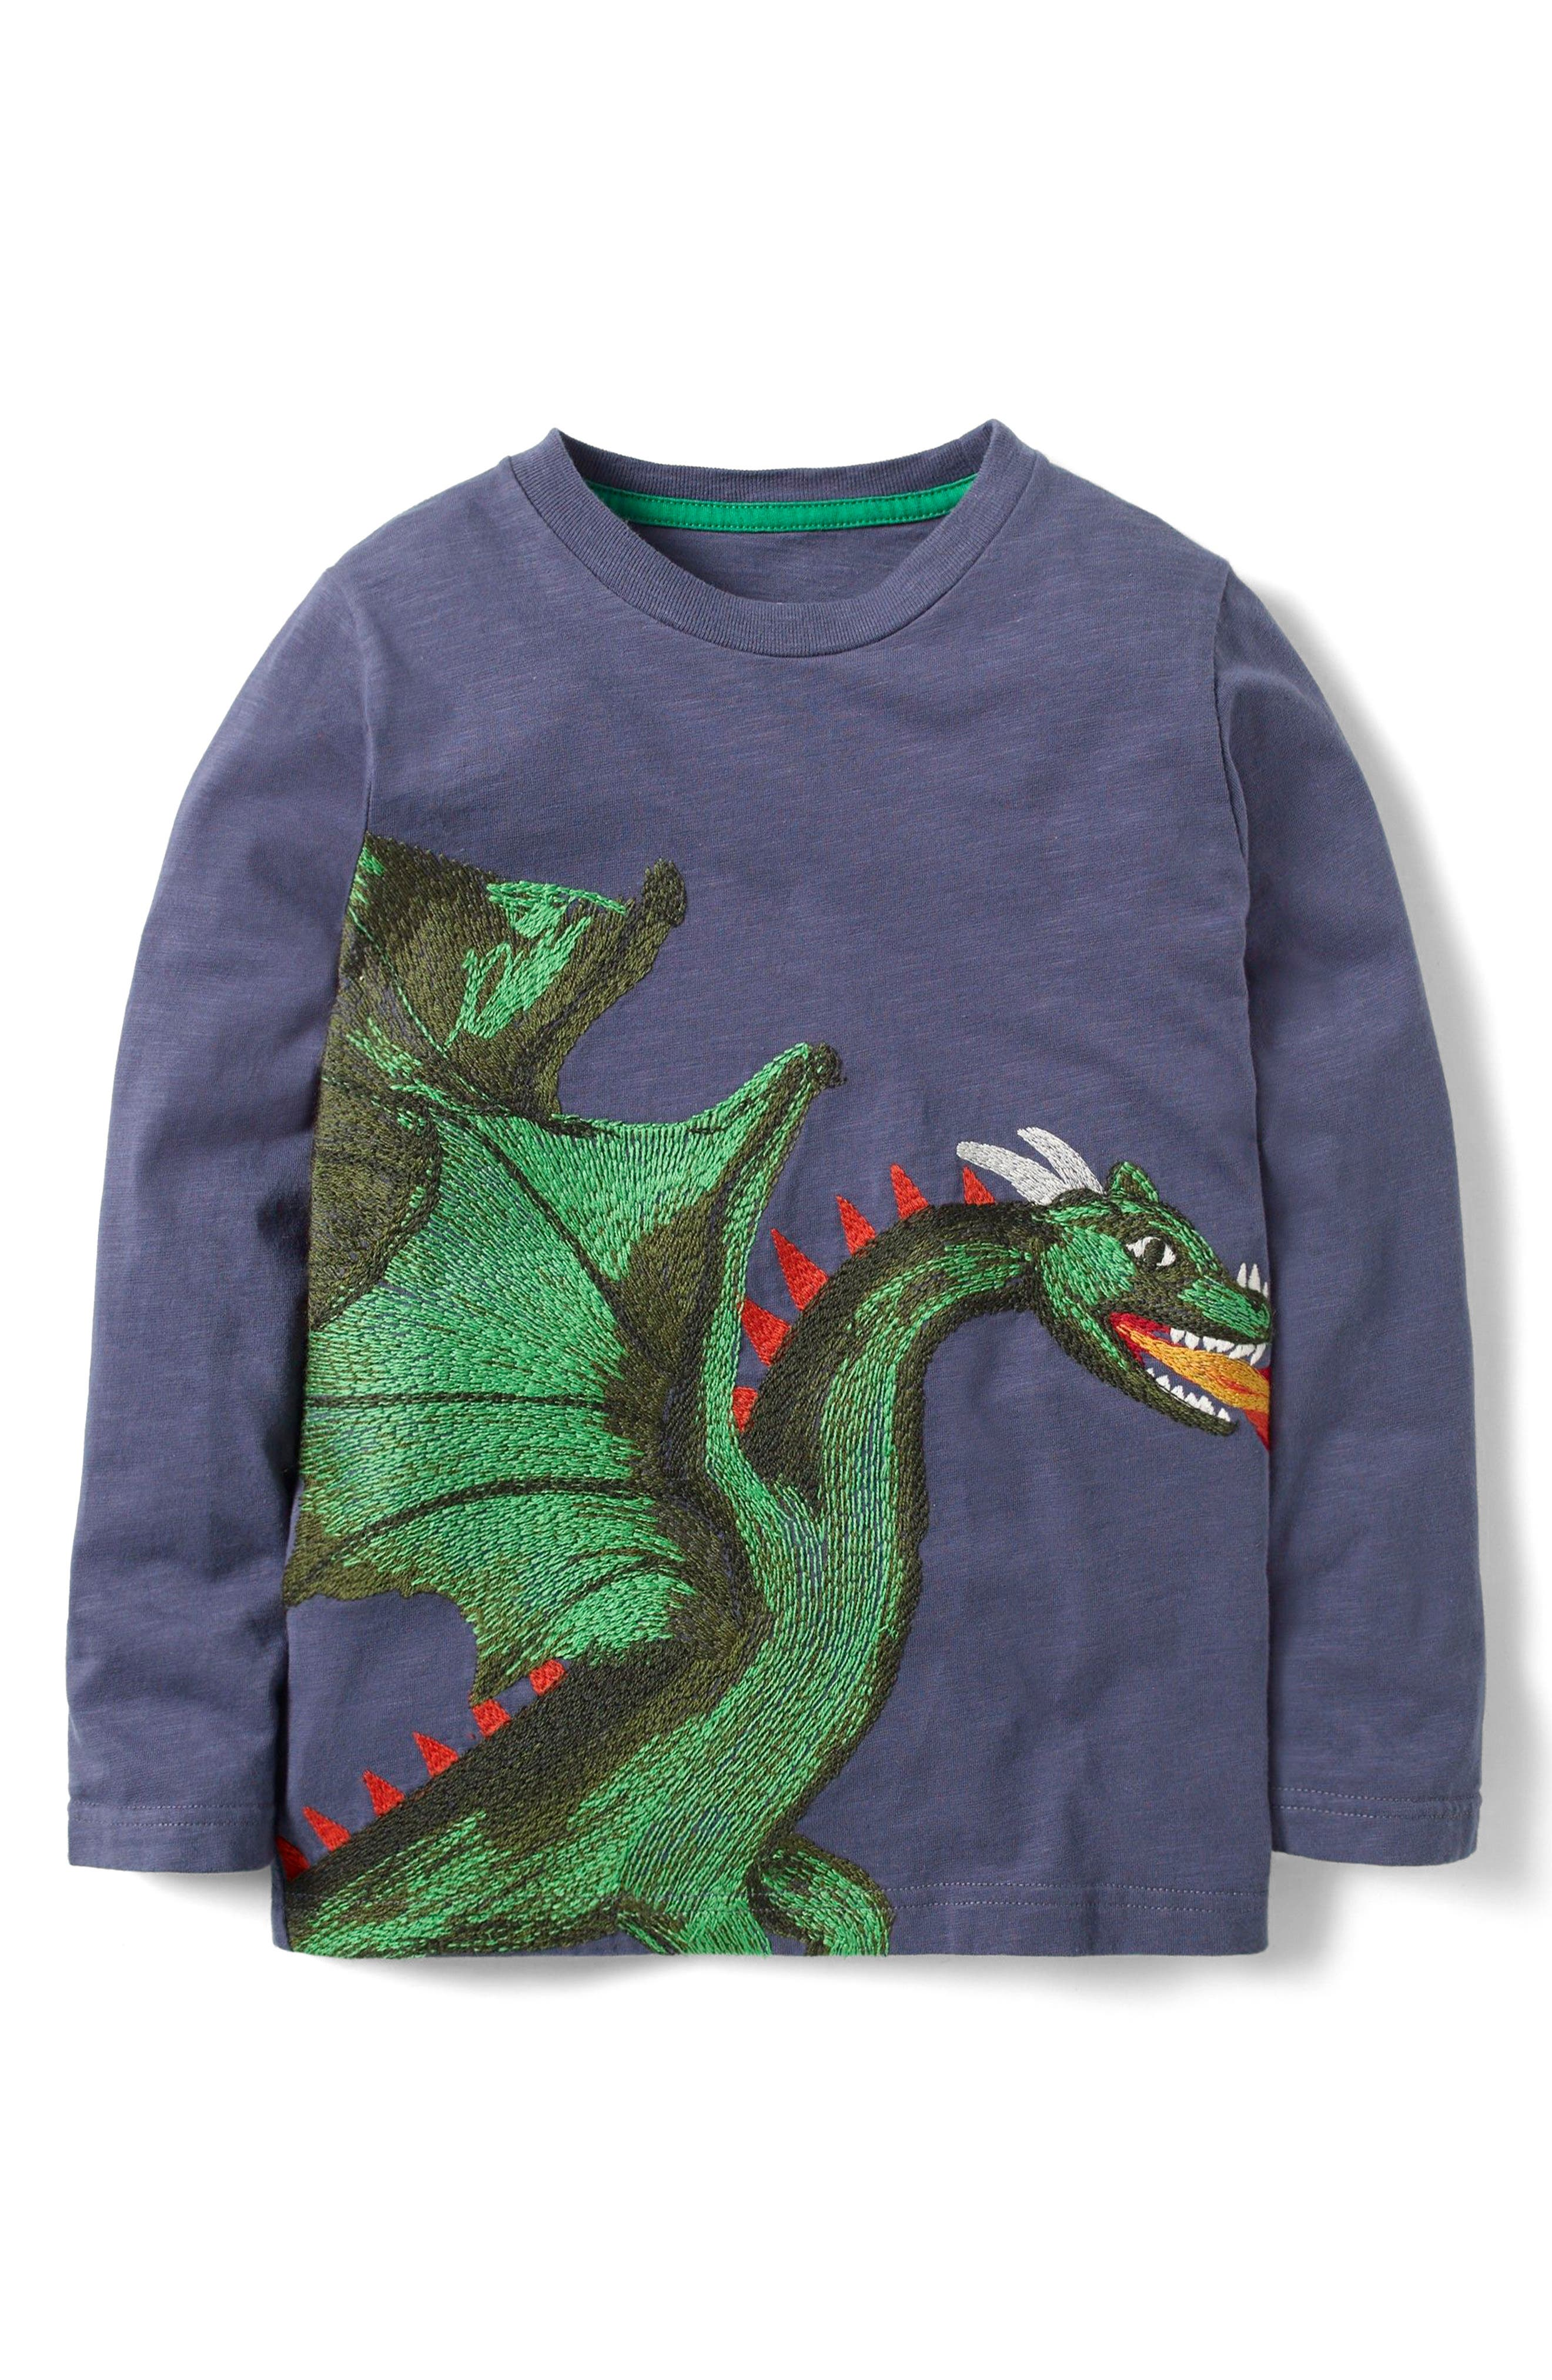 Mythical Superstitch T-Shirt,                             Main thumbnail 1, color,                             Charcoal Grey Marl Dragon